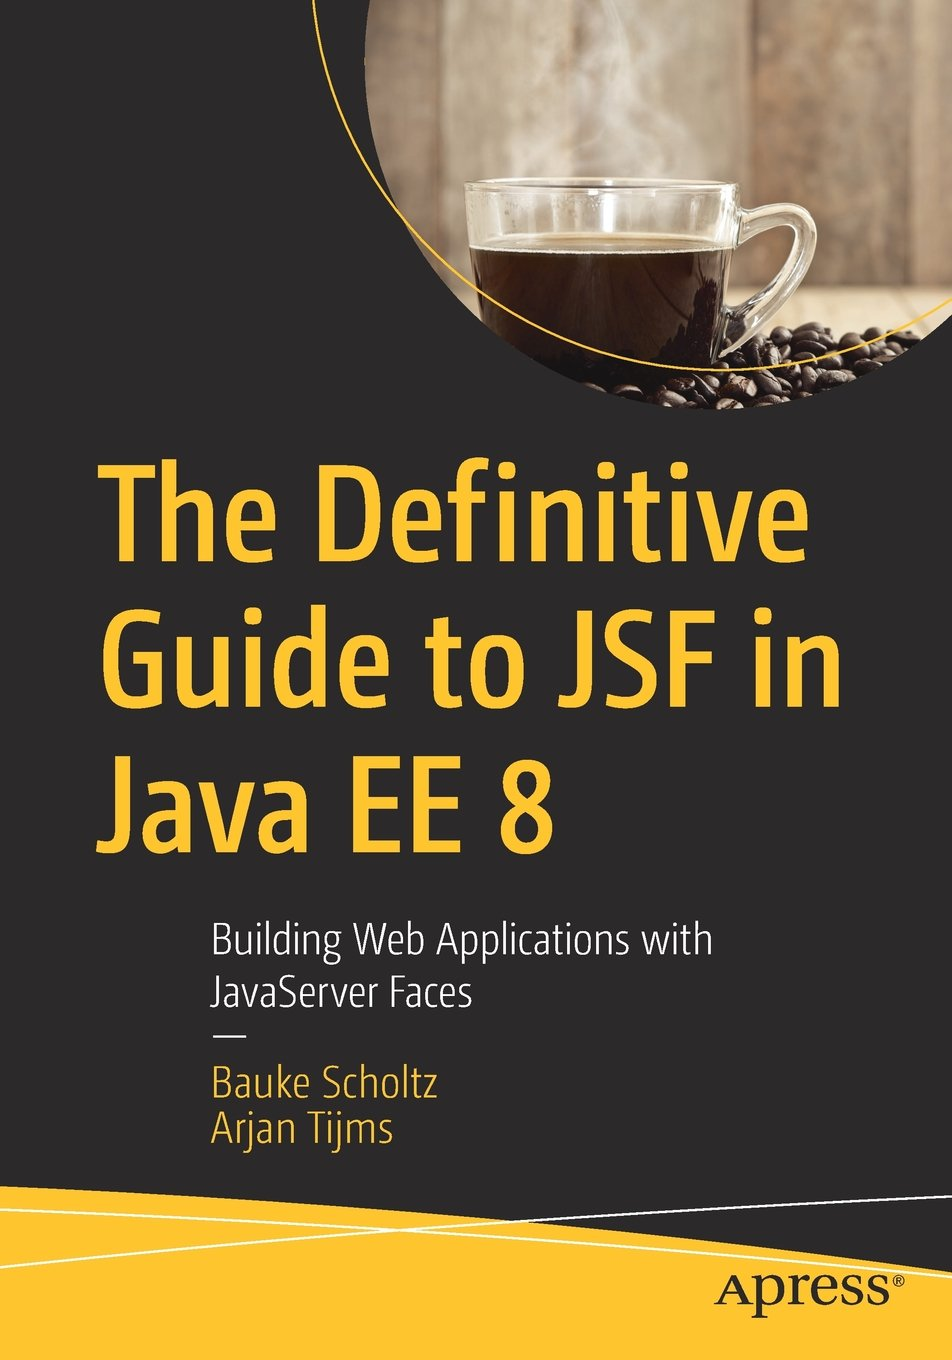 Download The Definitive Guide to JSF in Java EE 8: Building Web Applications with JavaServer Faces ebook